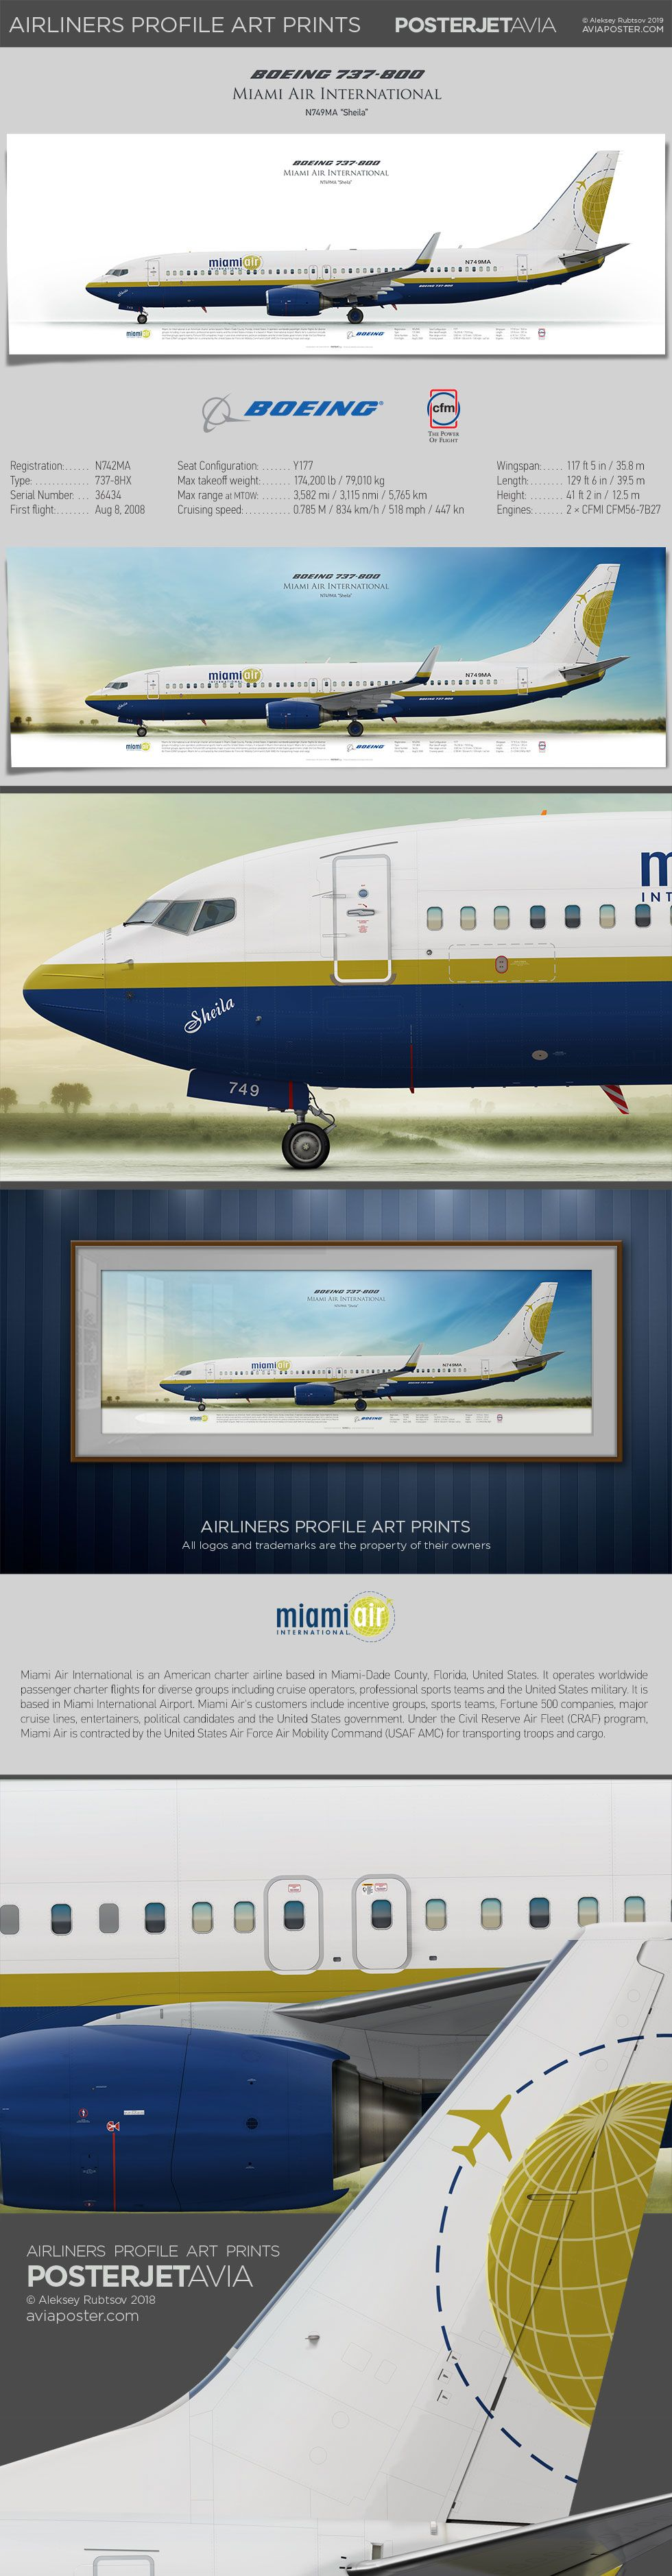 Boeing 737 800 Miami Air International Airliner Profile Art